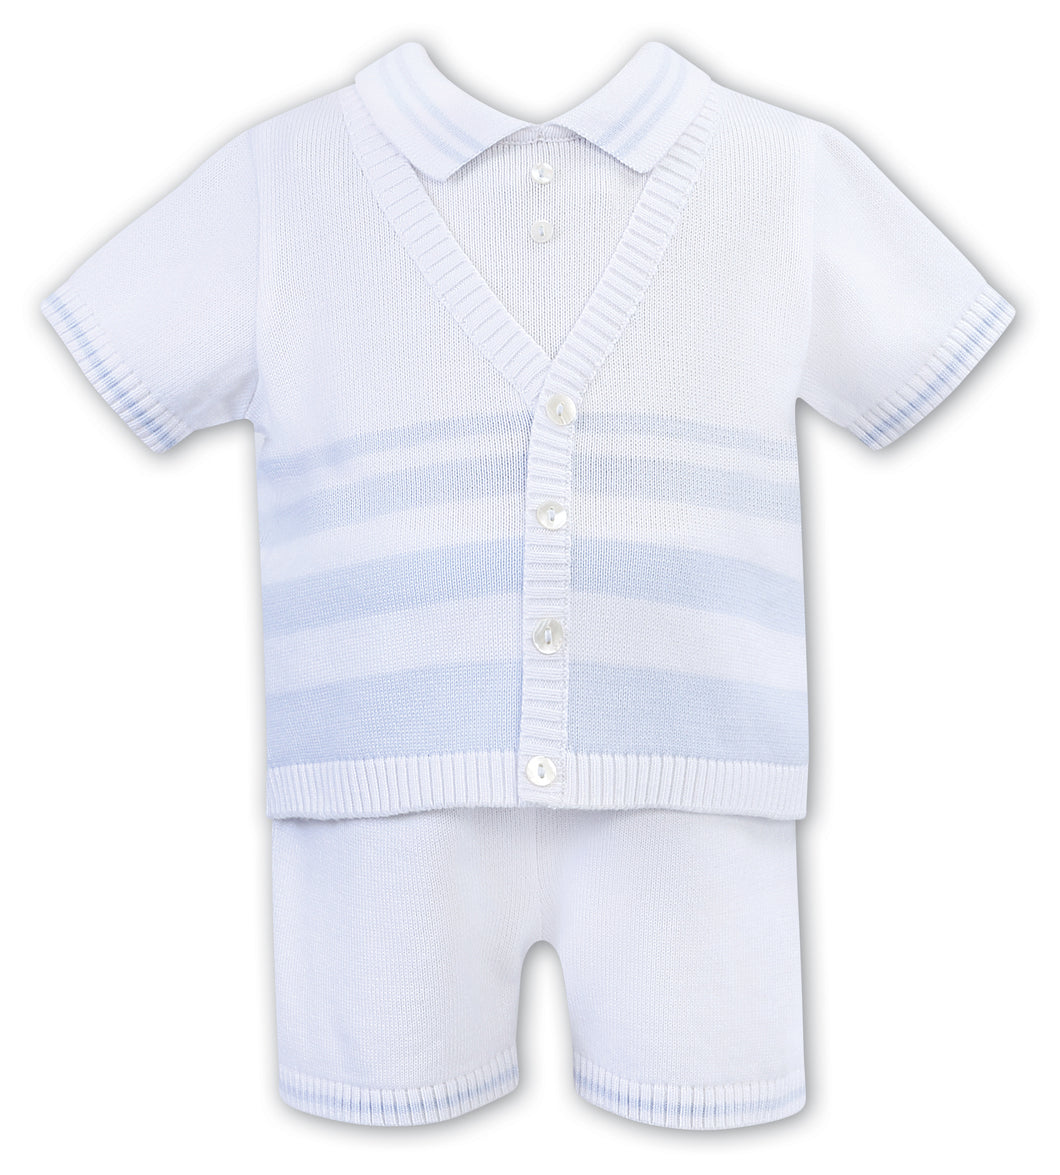 Baby Boys Short Sleeved Fine Knit Set with Contrasting Stripe and Button on Polo, Waistcoat Detailed Top